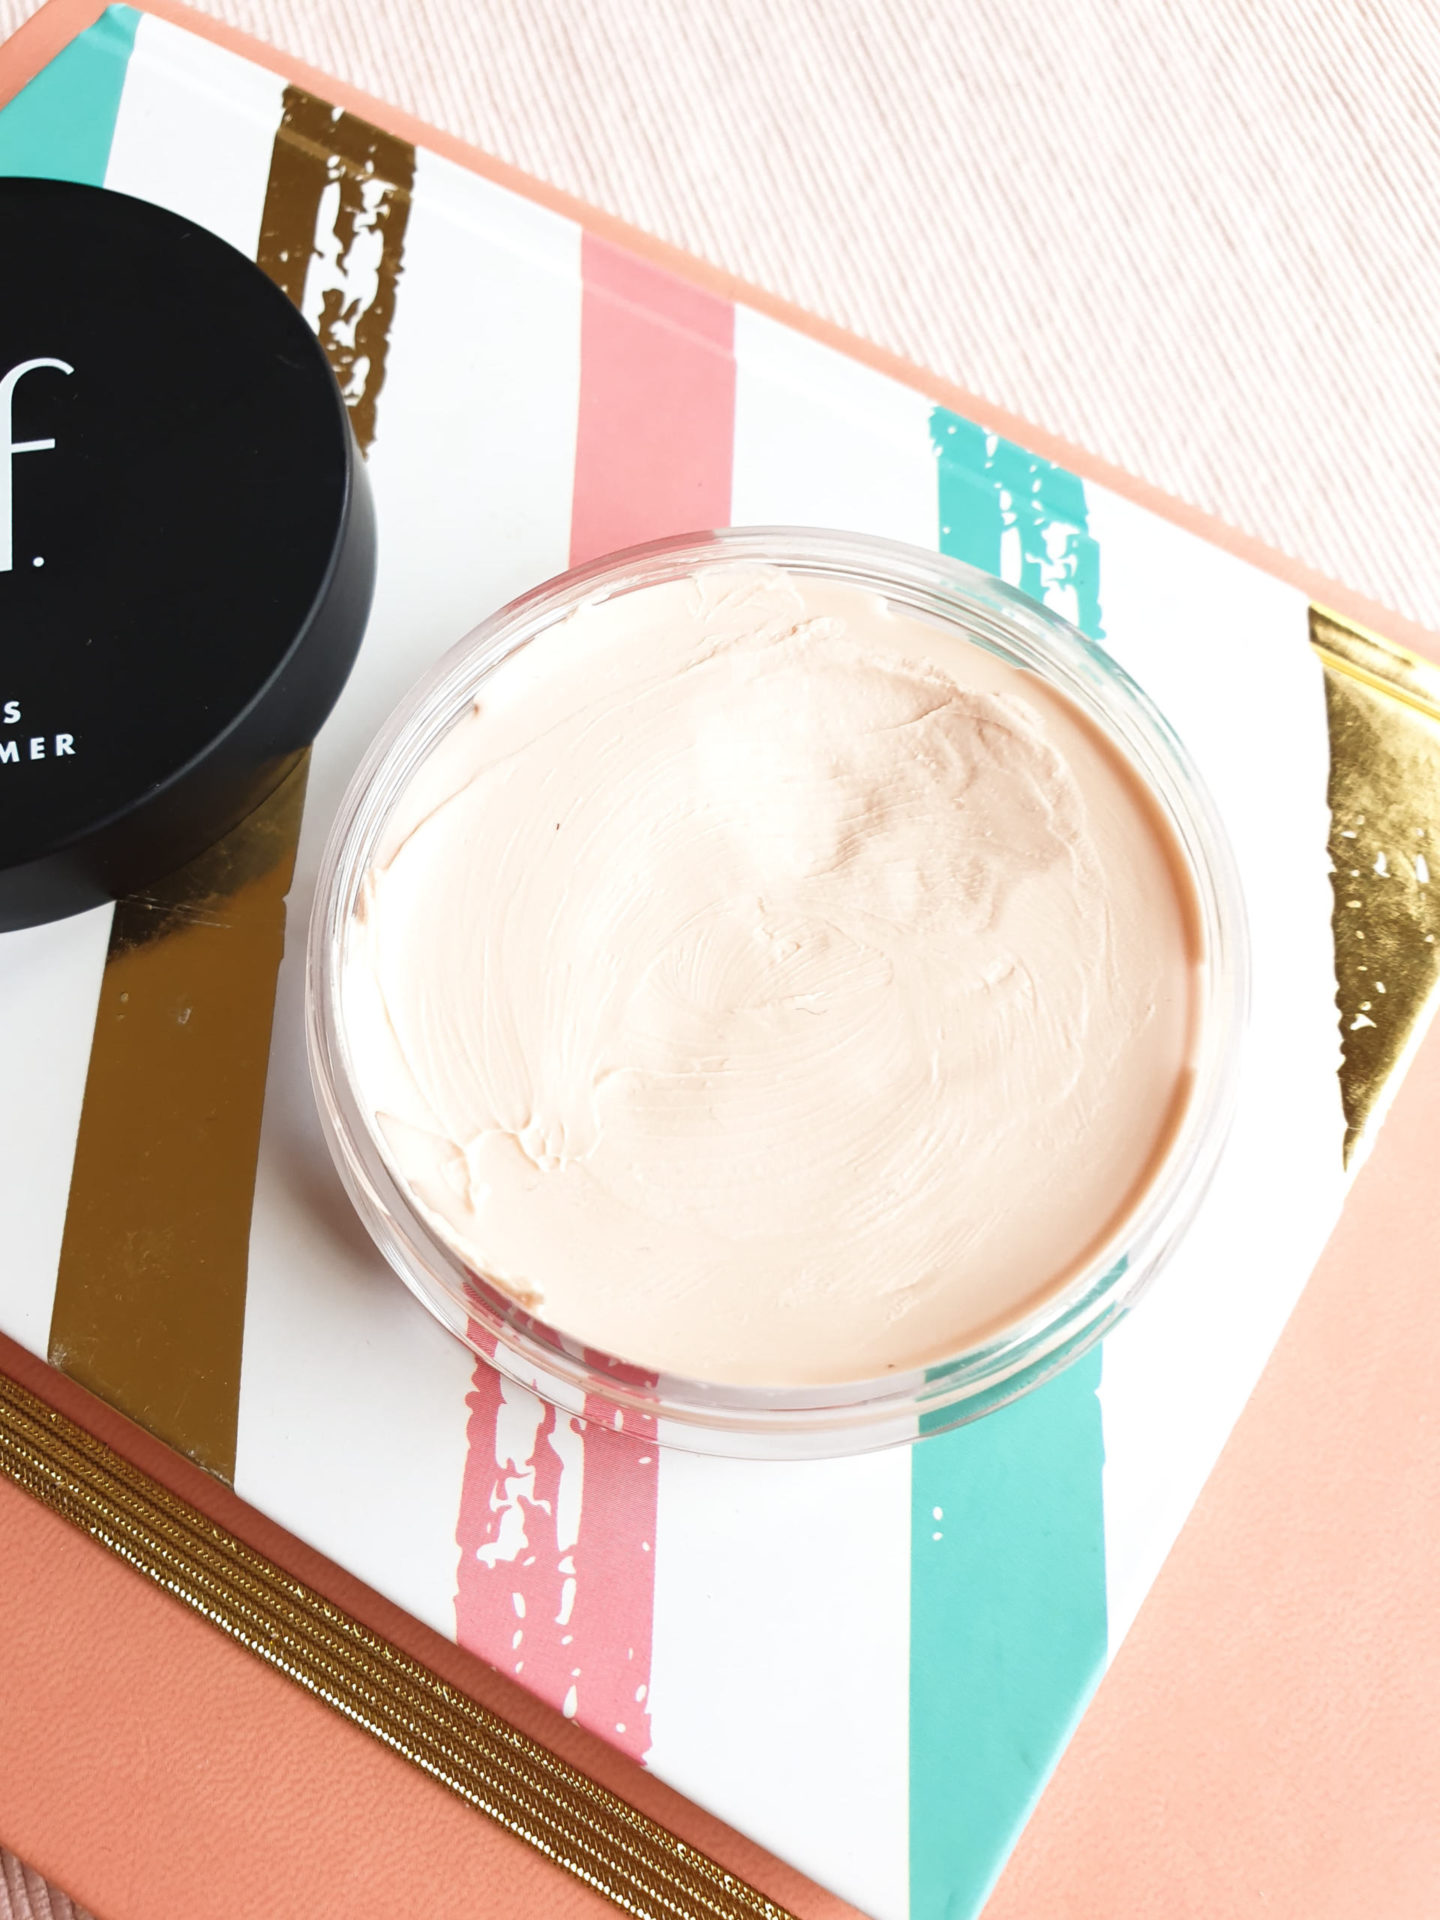 e.l.f. Poreless Putty Primer in Universal Sheer